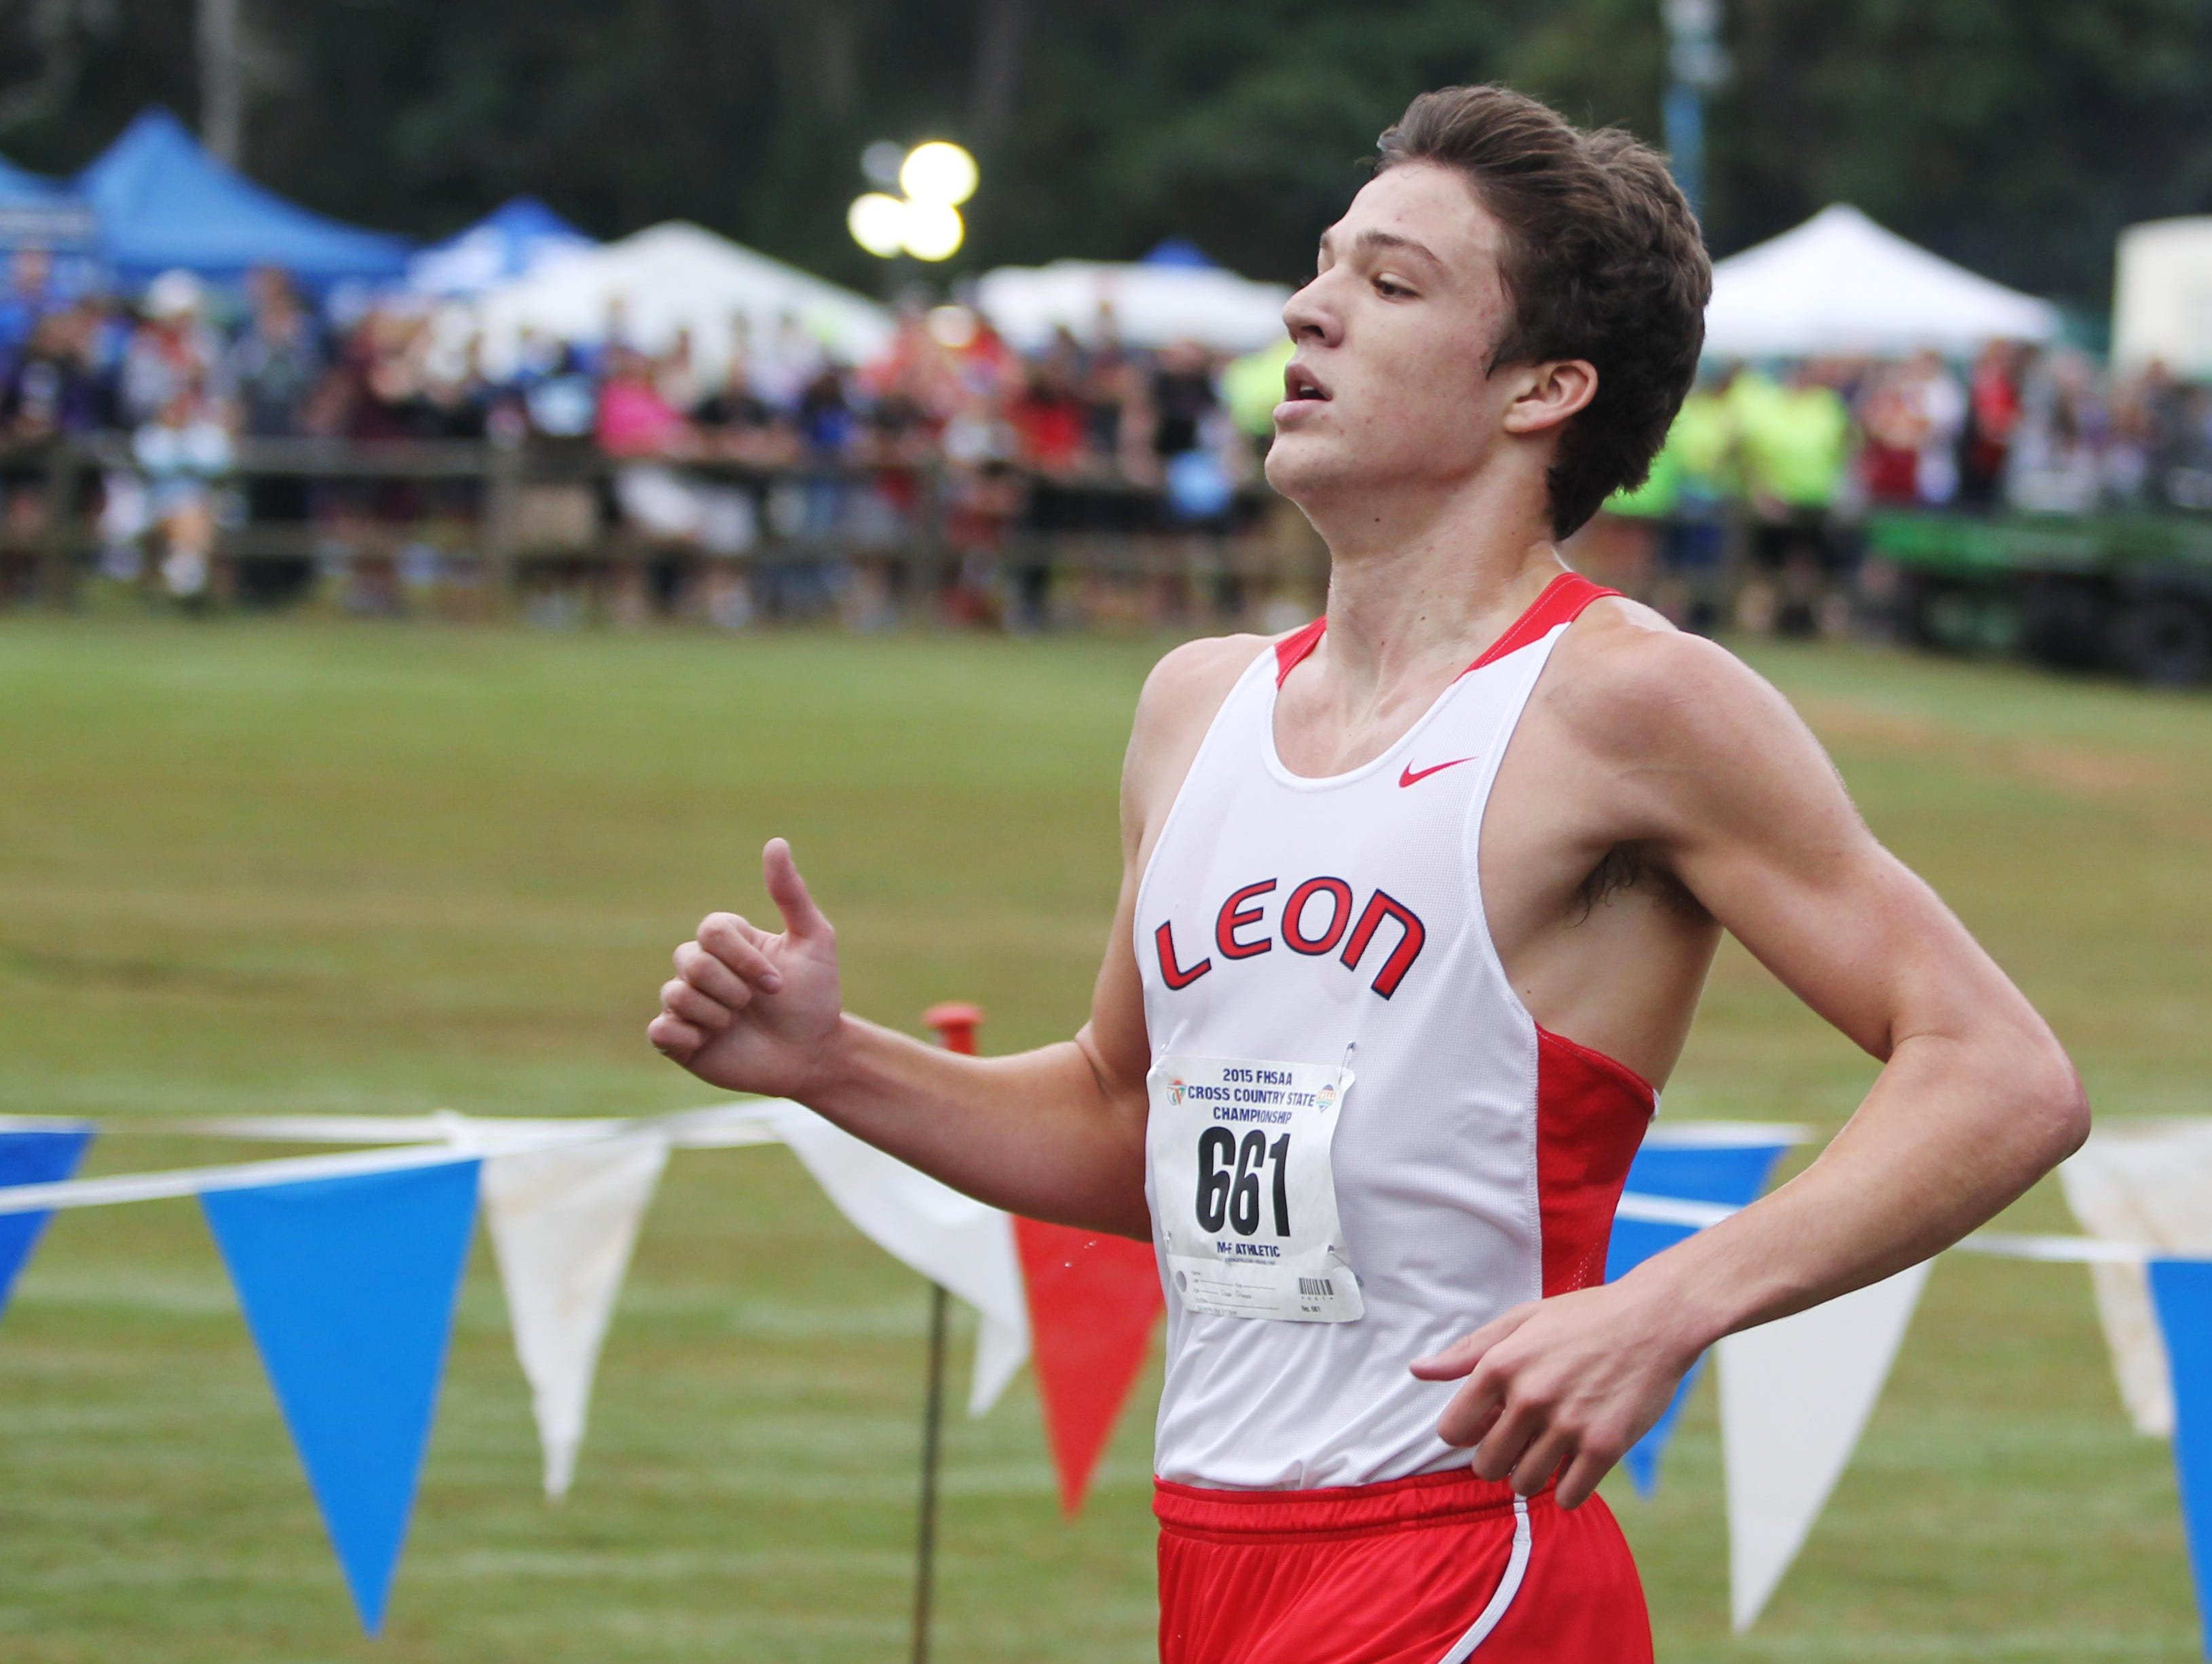 Leon senior Adam Wallenfelsz finished in the top 10 for the Lions in his final meet during Saturday's FHSAA cross country finals. Wallenfelsz only began running four years ago to train for lacrosse.